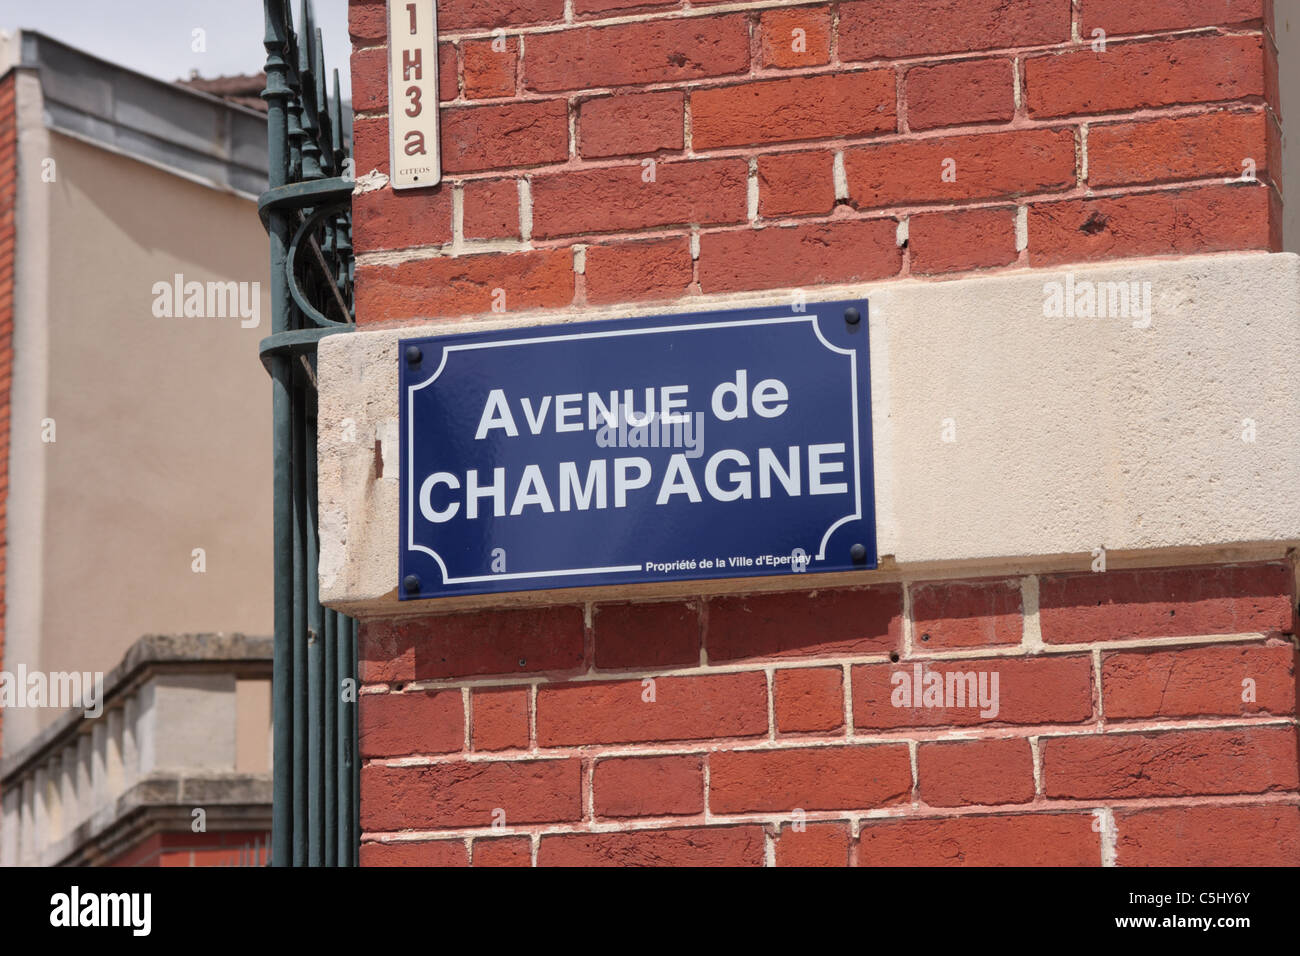 Road name sign of the Avenue de Champagne Epernay France - Stock Image